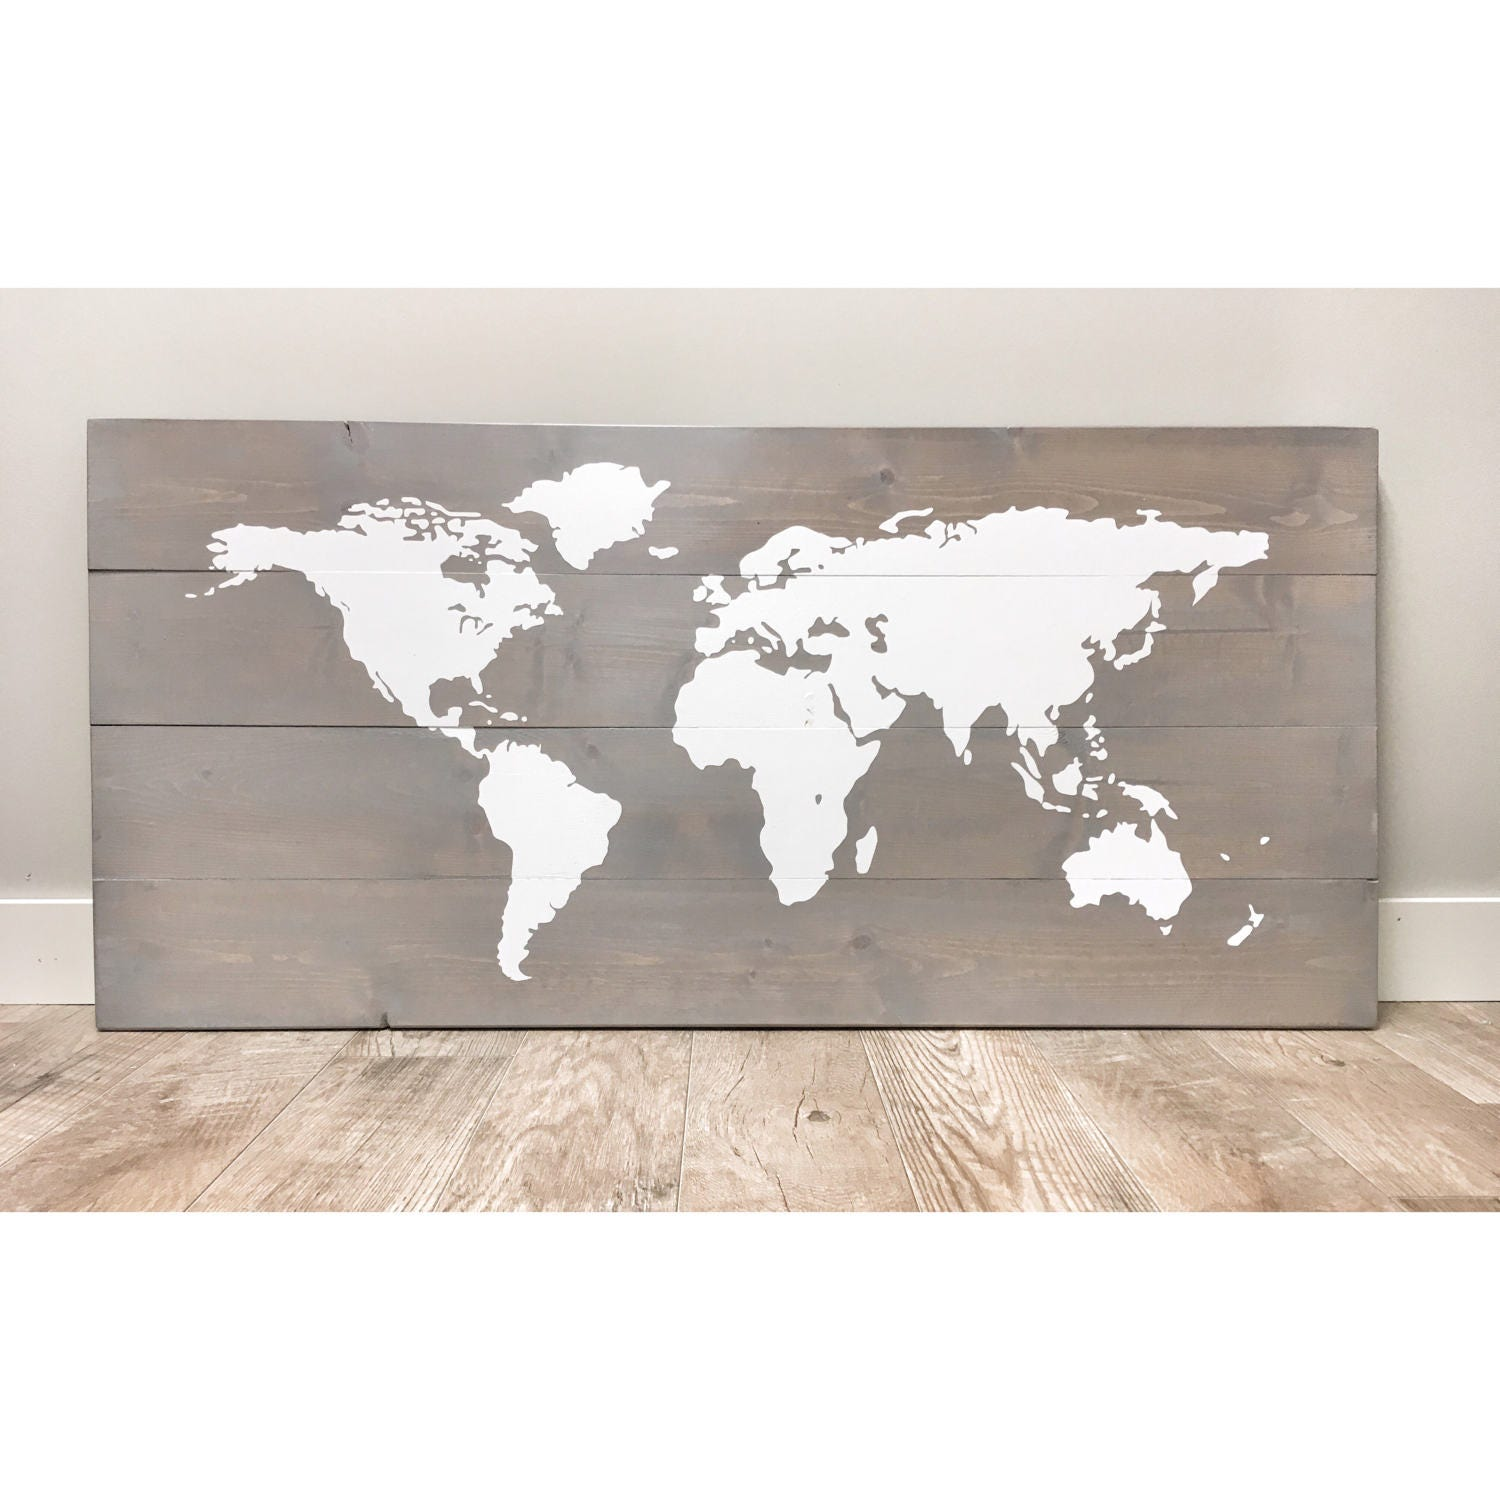 Rustic wood world map rustic decor farmhouse decor rustic nursery rustic wood world map rustic decor farmhouse decor rustic nursery decor wall decor wooden white world map rustic wedding 46 x 22 gumiabroncs Image collections